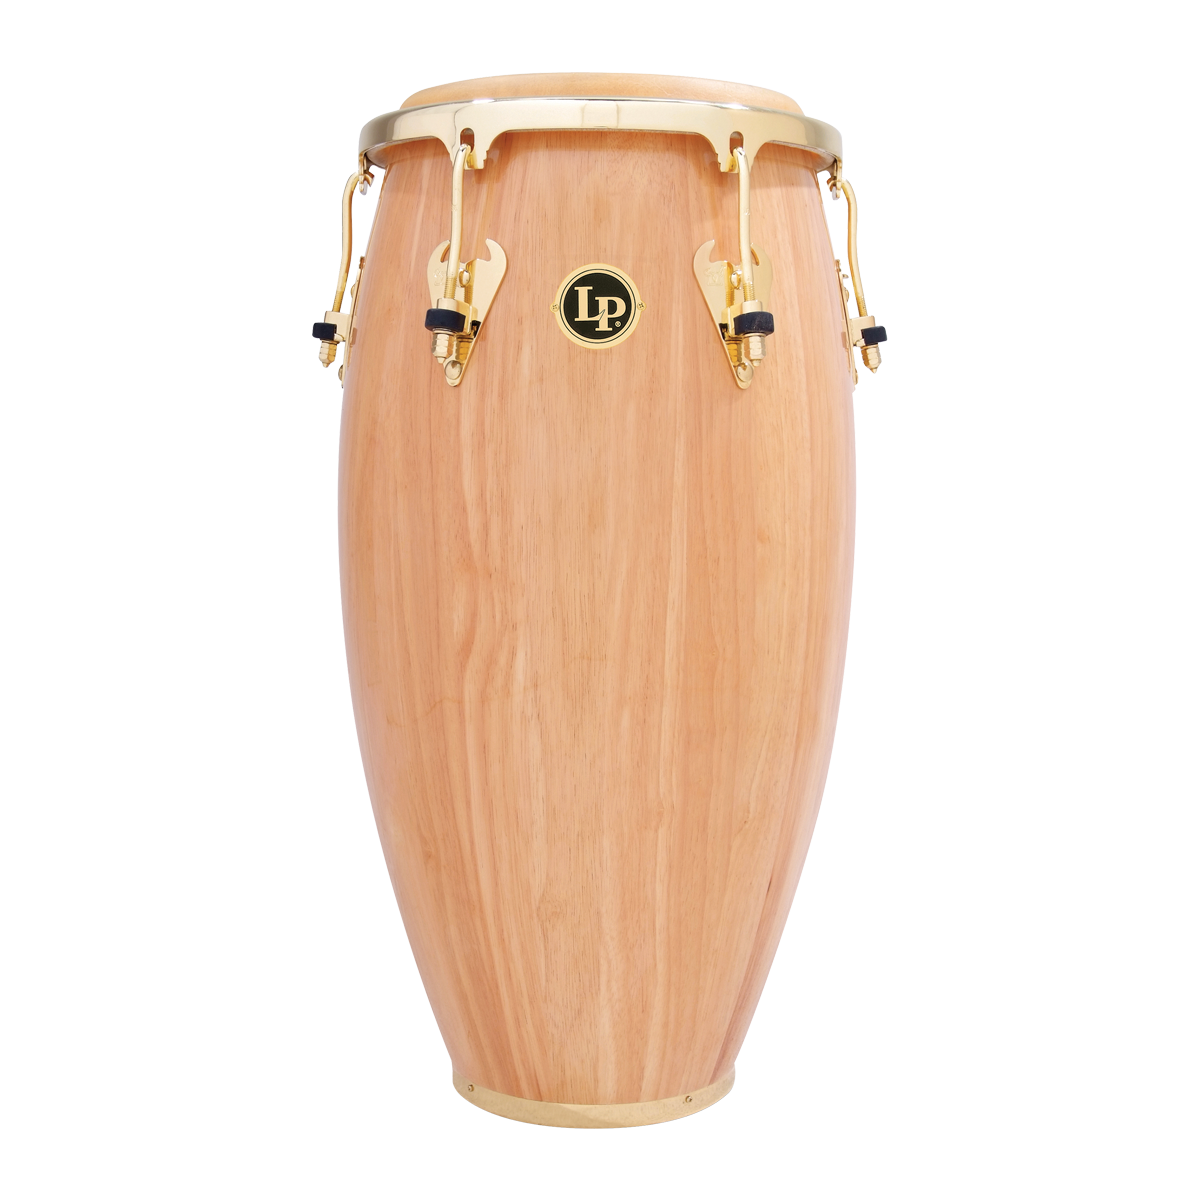 View Matador Wood Drumhead Selection